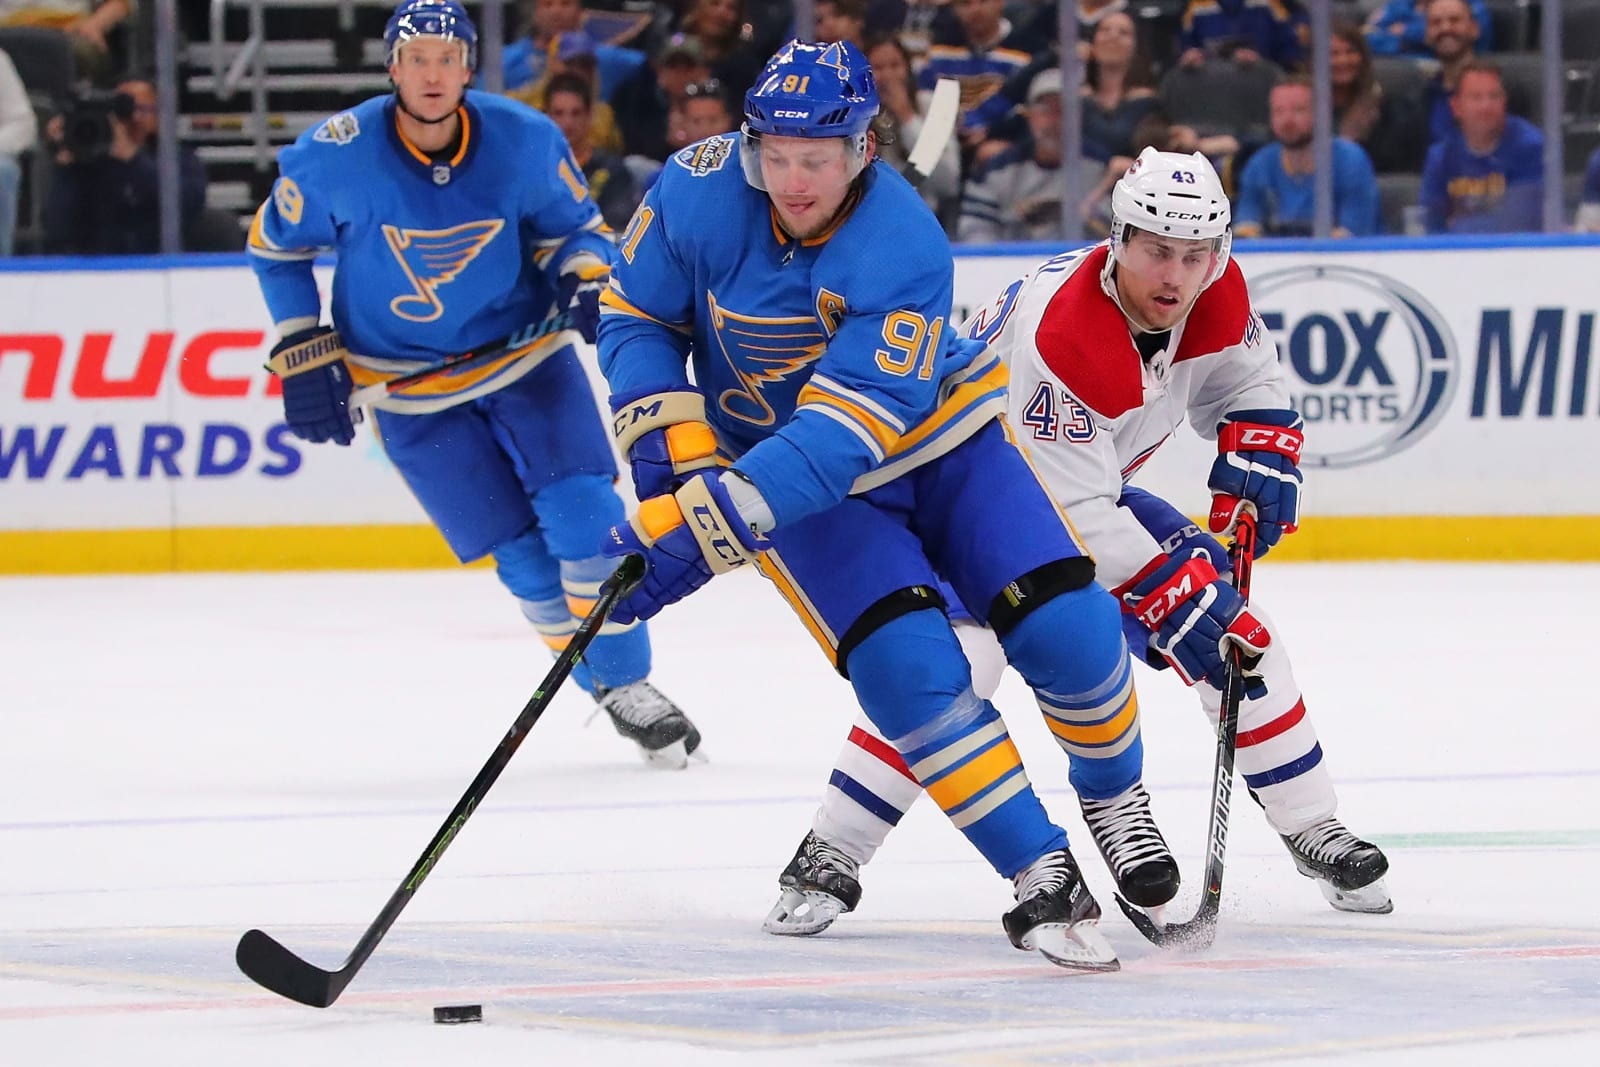 Vladimir Tarasenko #91 of the St. Louis Blues moves the puck up ice.